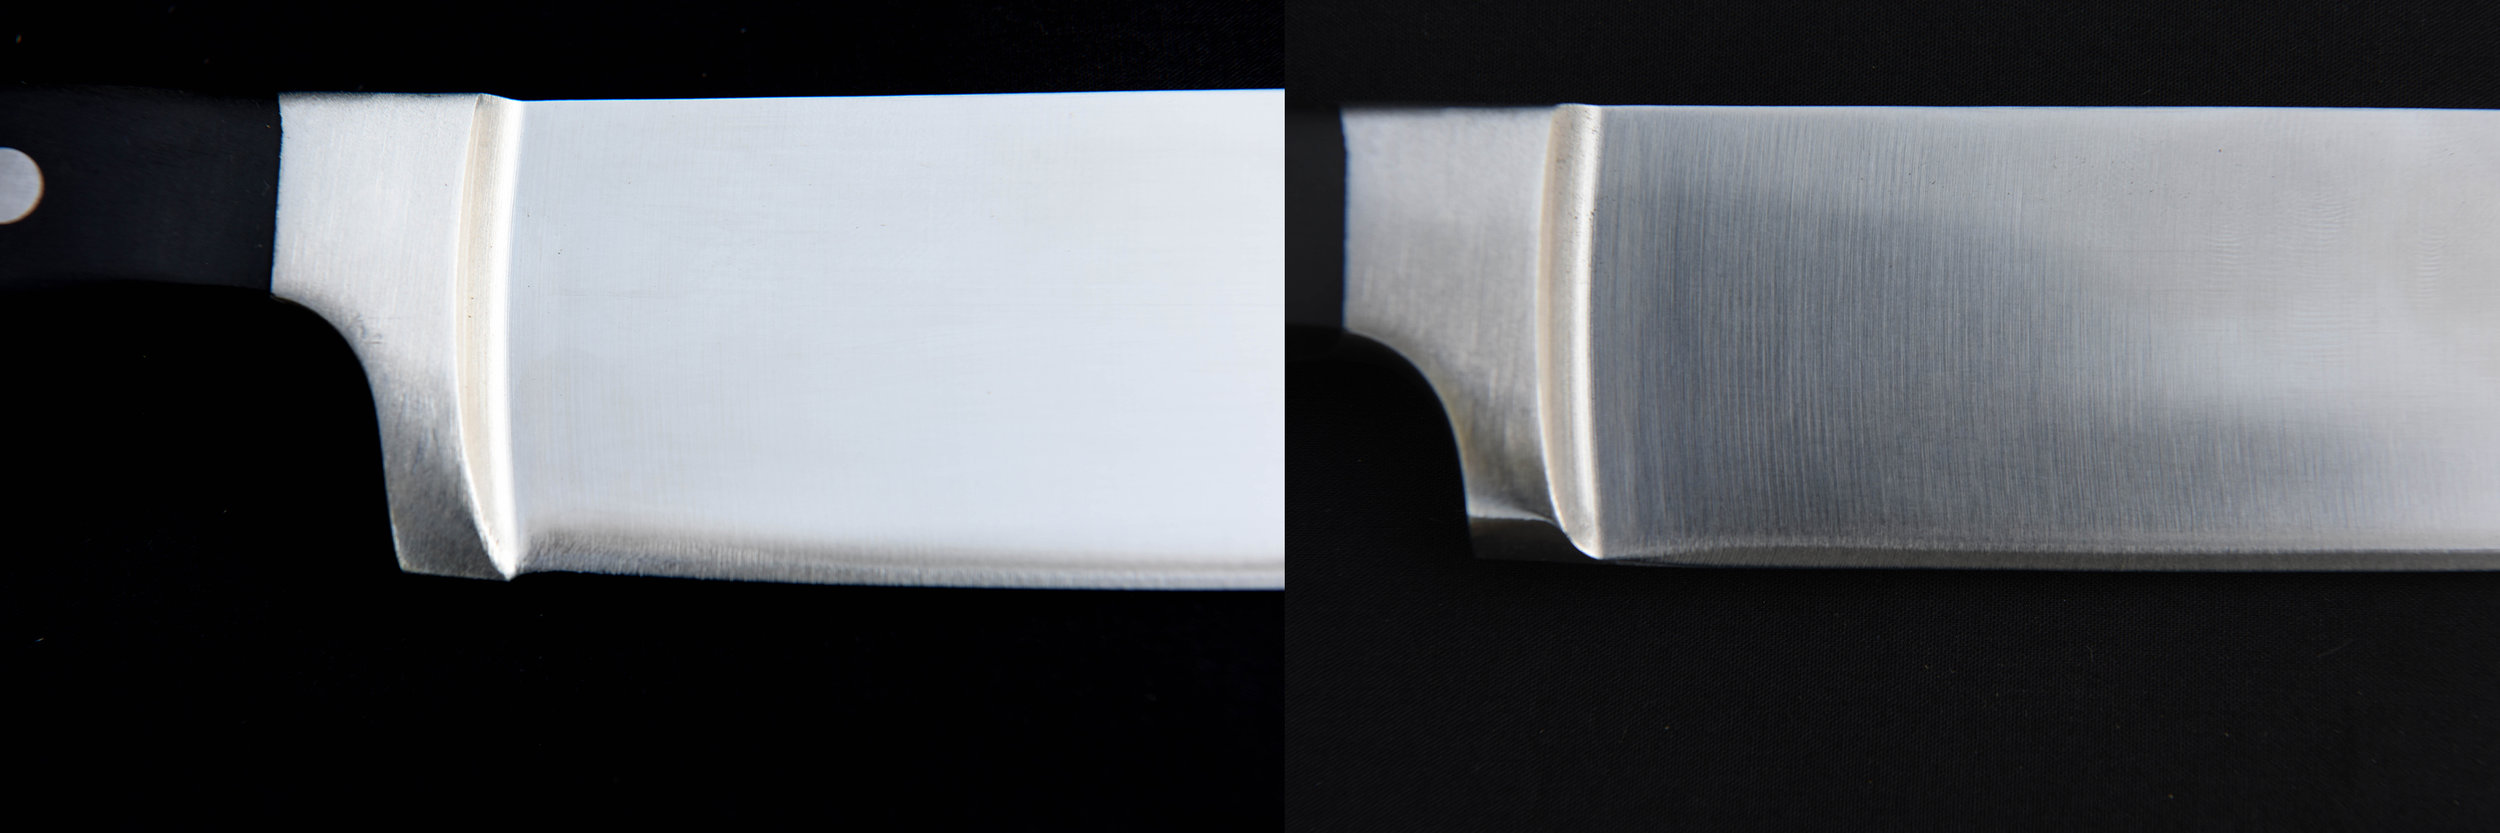 The knife on the left has what we call a reverse bow; It is a little hard to see and in many cases it is much more drastic. if you look at the section of the blade just to the front of the thick vertical bolster, you will notice that the cutting edge is a little higher than the bottom edge of the bolster and cannot cut as it will not make contact with the cutting surface. In the image on the right, the knife has been repaired by carefully removing some of the material on the bolster and re-profiling the geometry of the cutting edge.